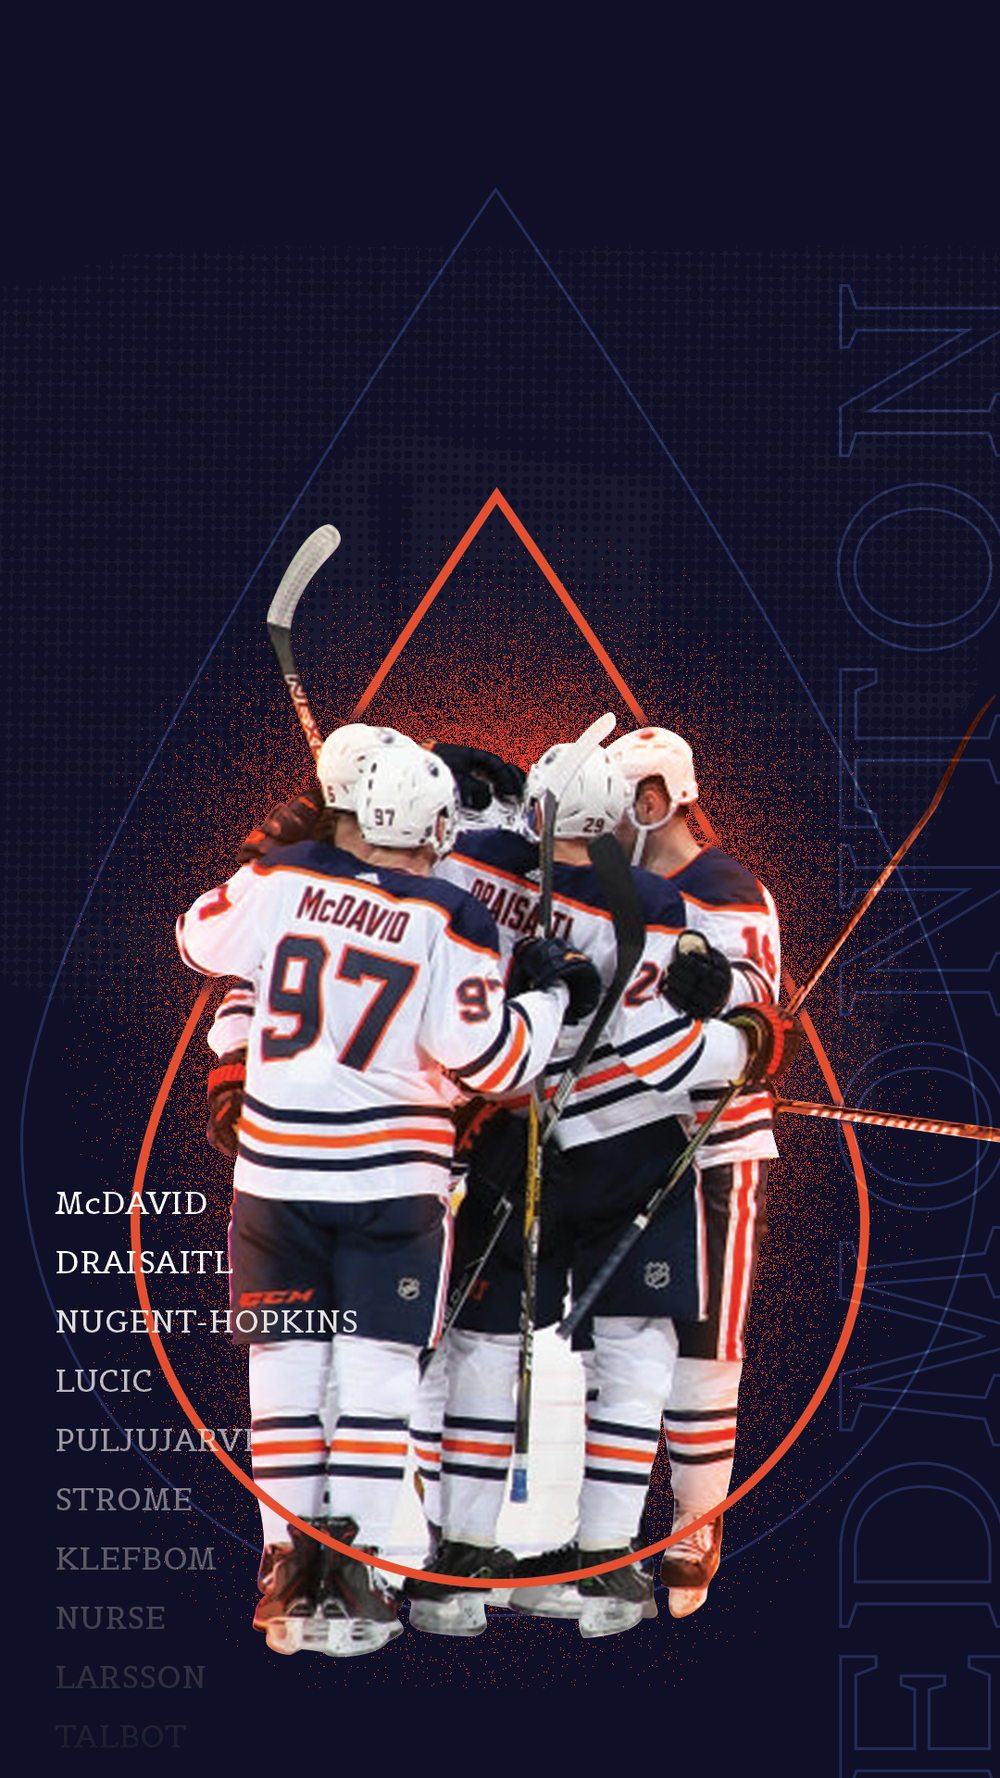 Wallpaper2_McDavid.png